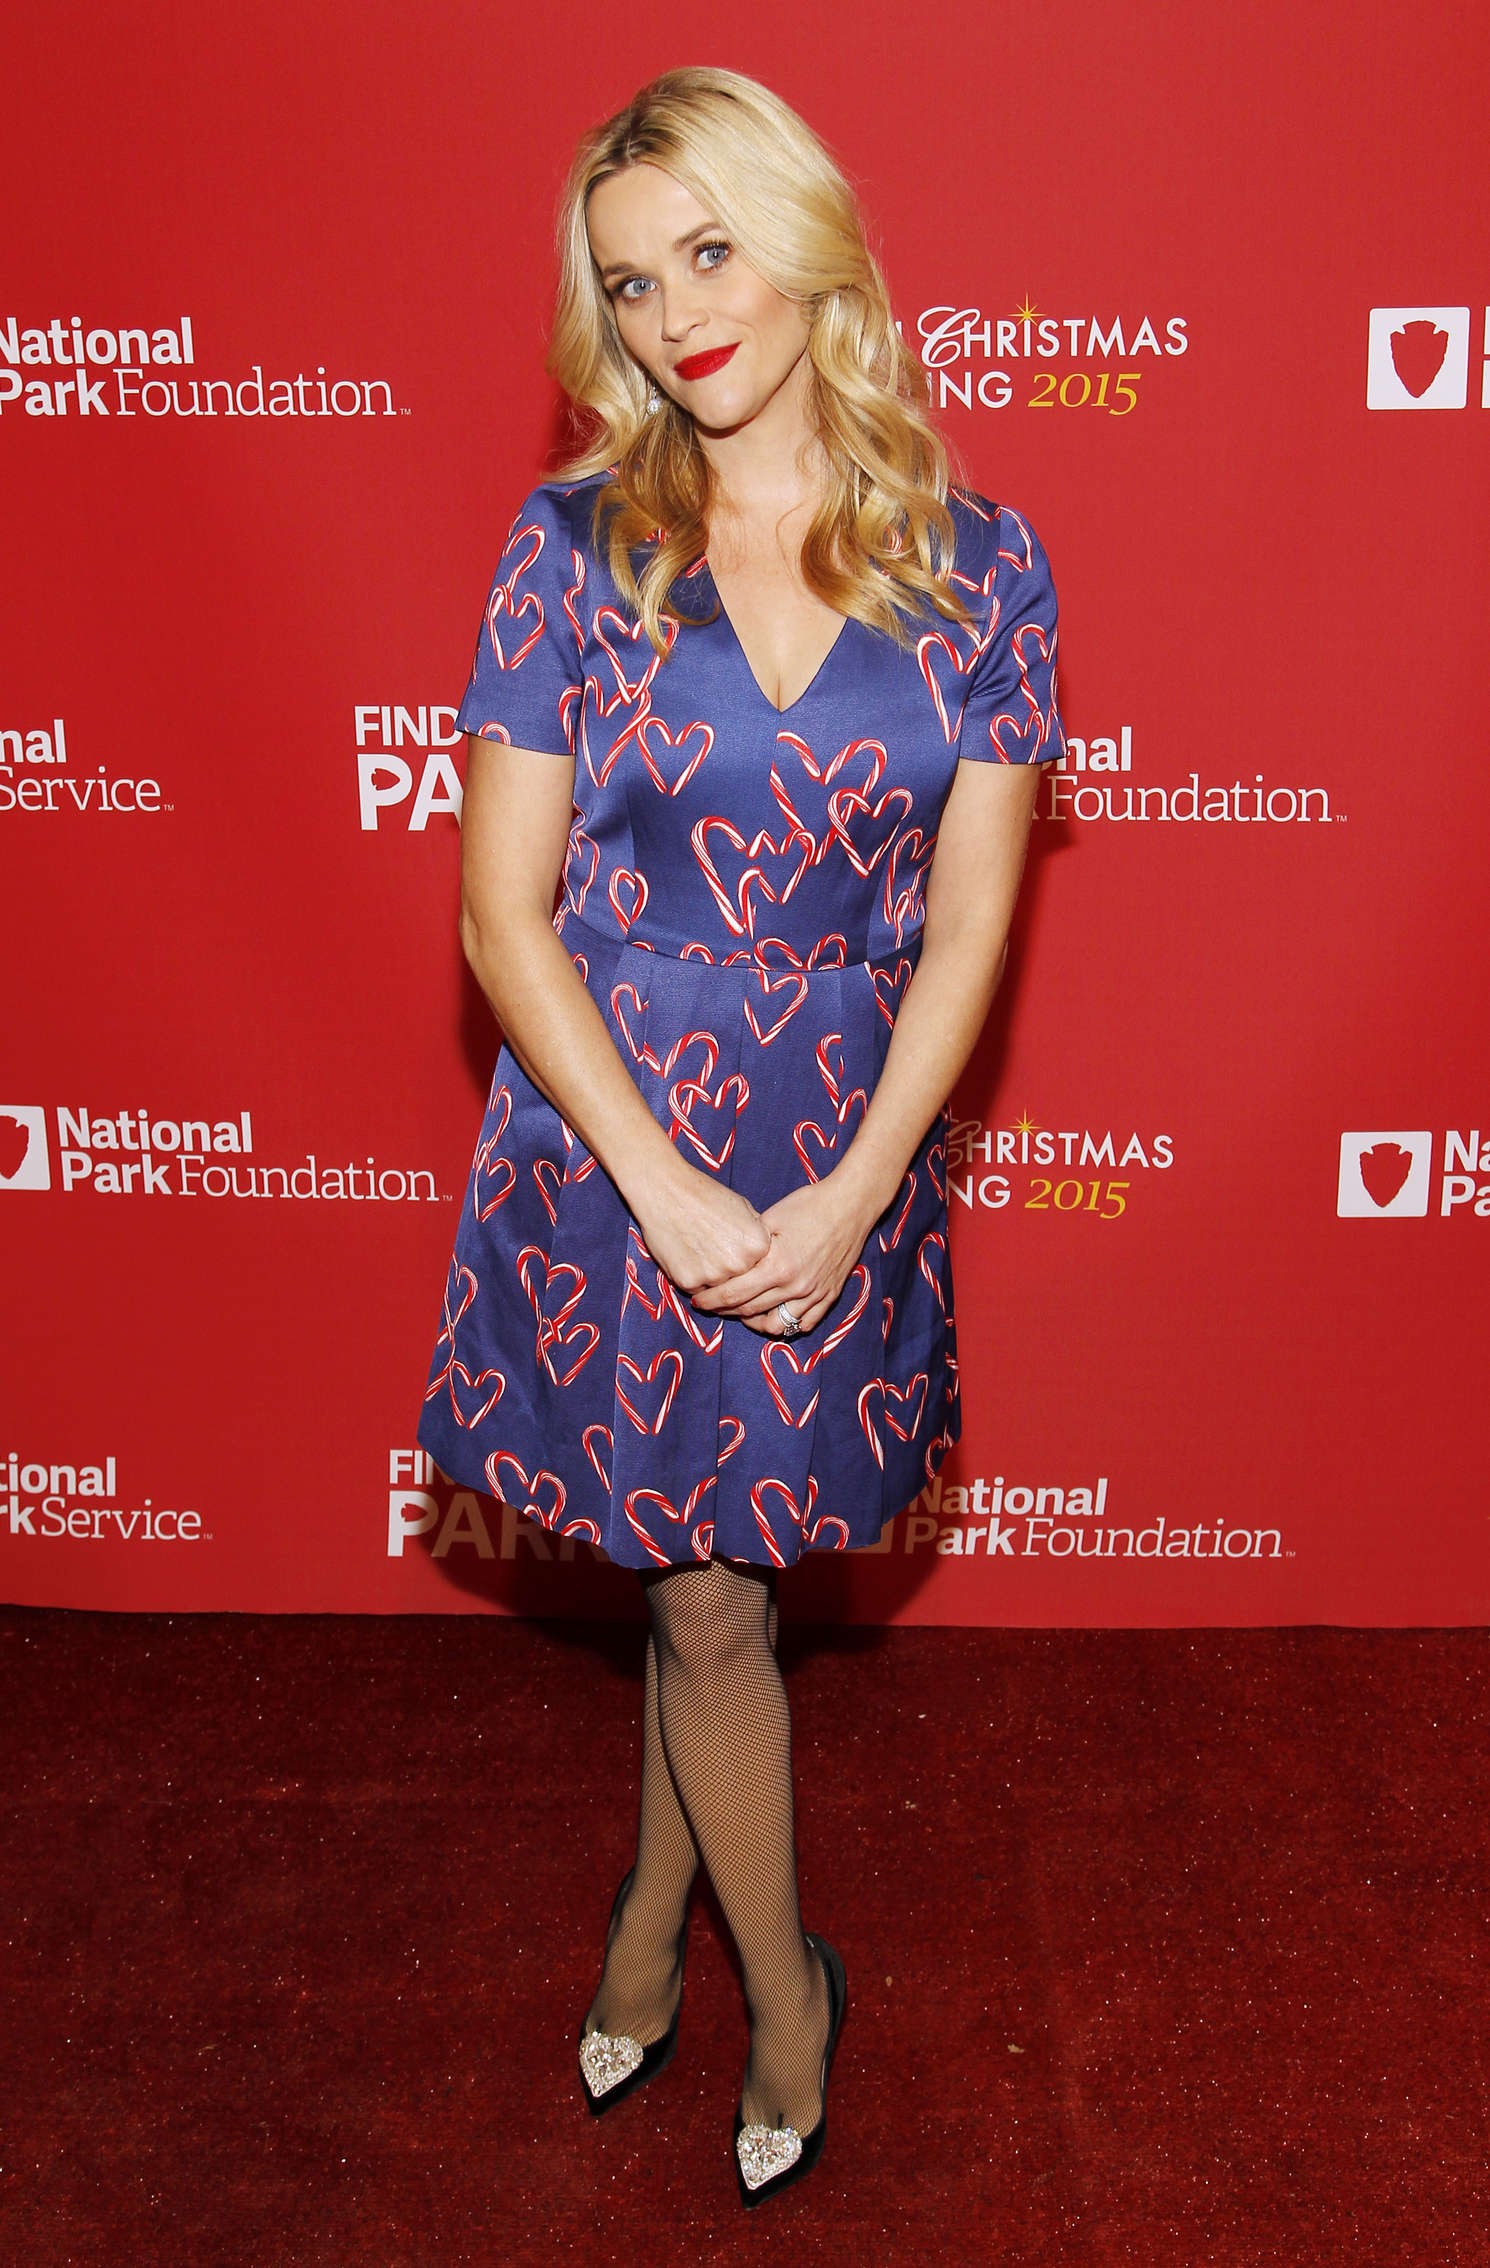 Reese Witherspoon 93rd Annual National Christmas Tree